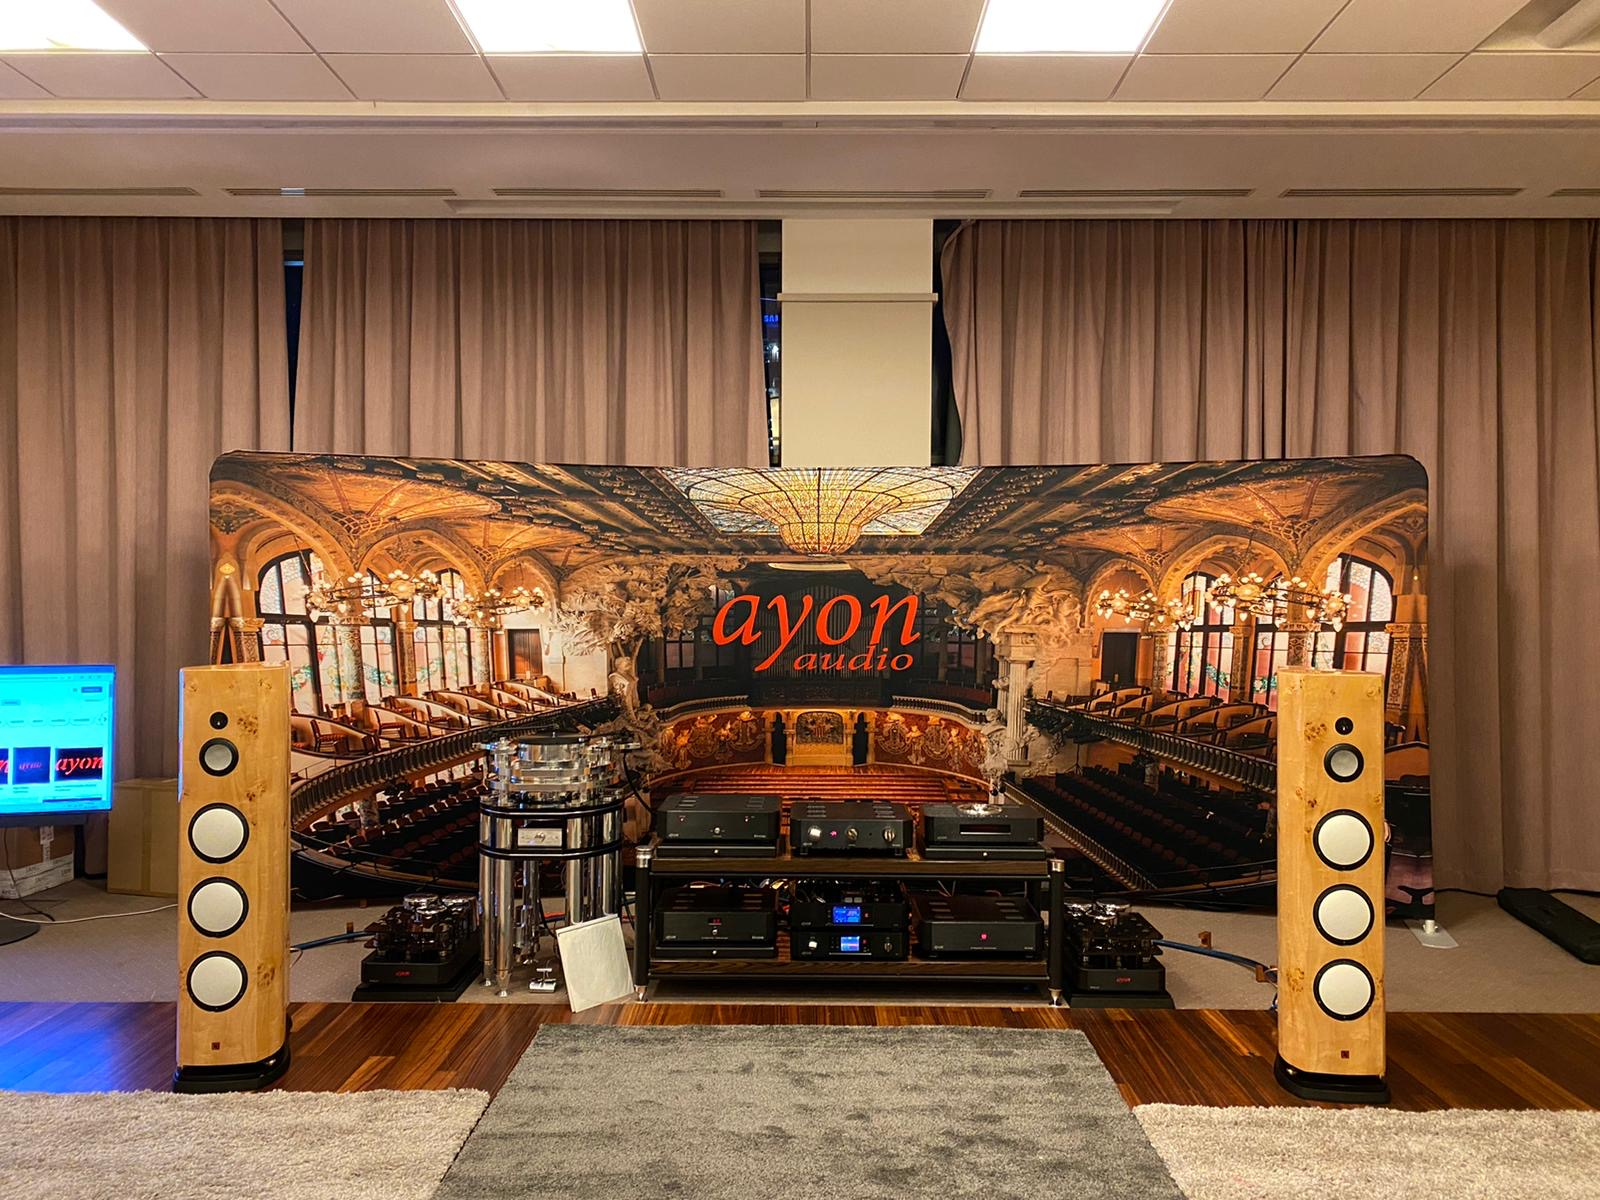 Ayon Warsaw High End Audio Show 2019